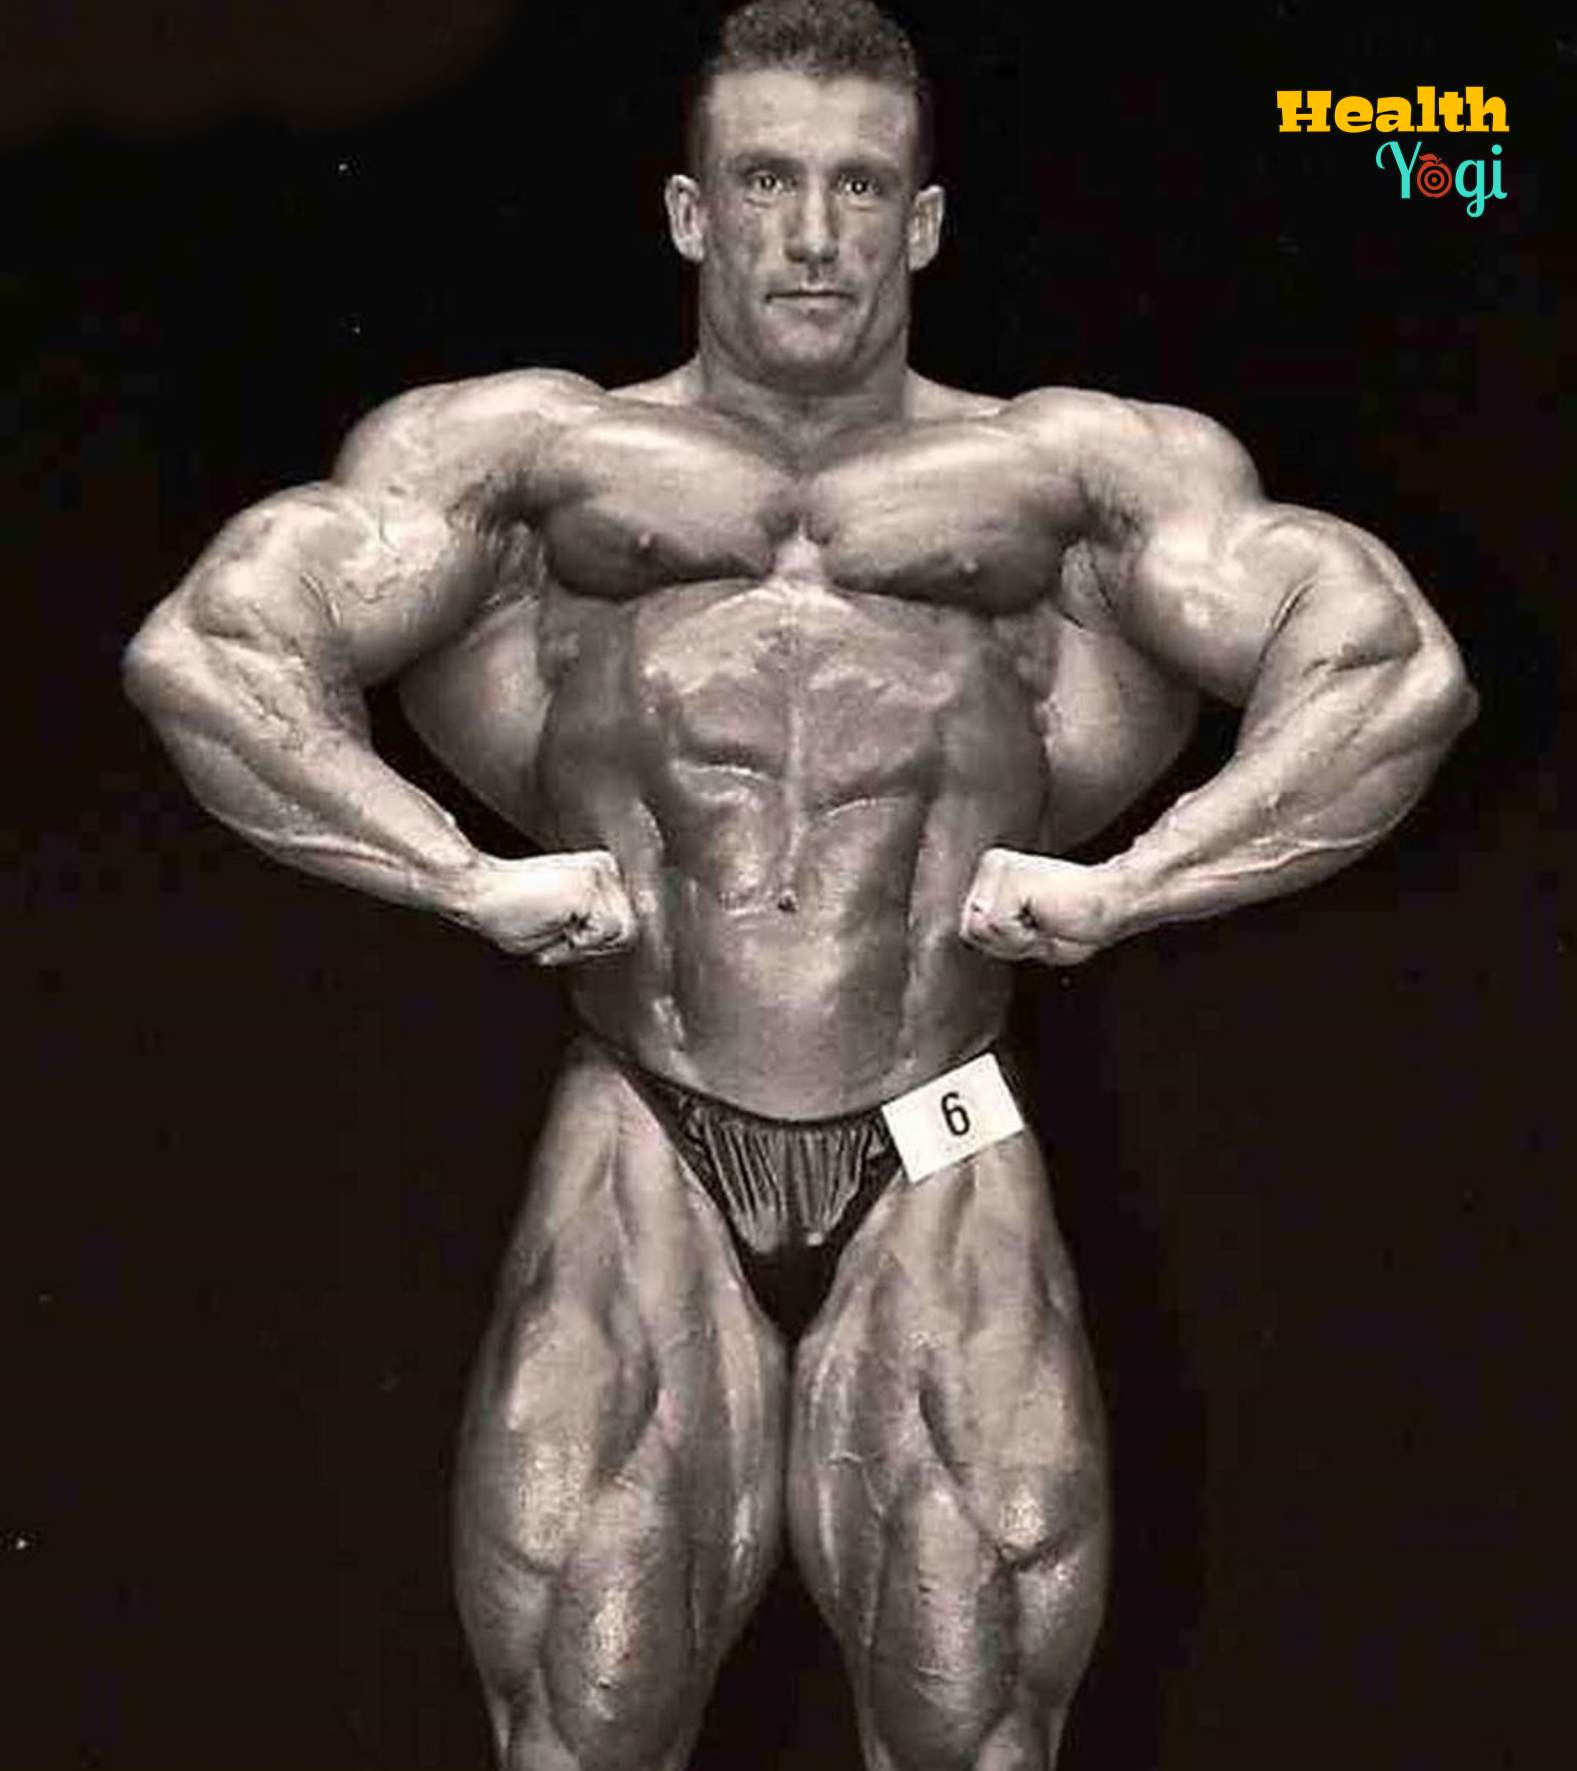 Dorian Yates Exercise Routine Meal Plan